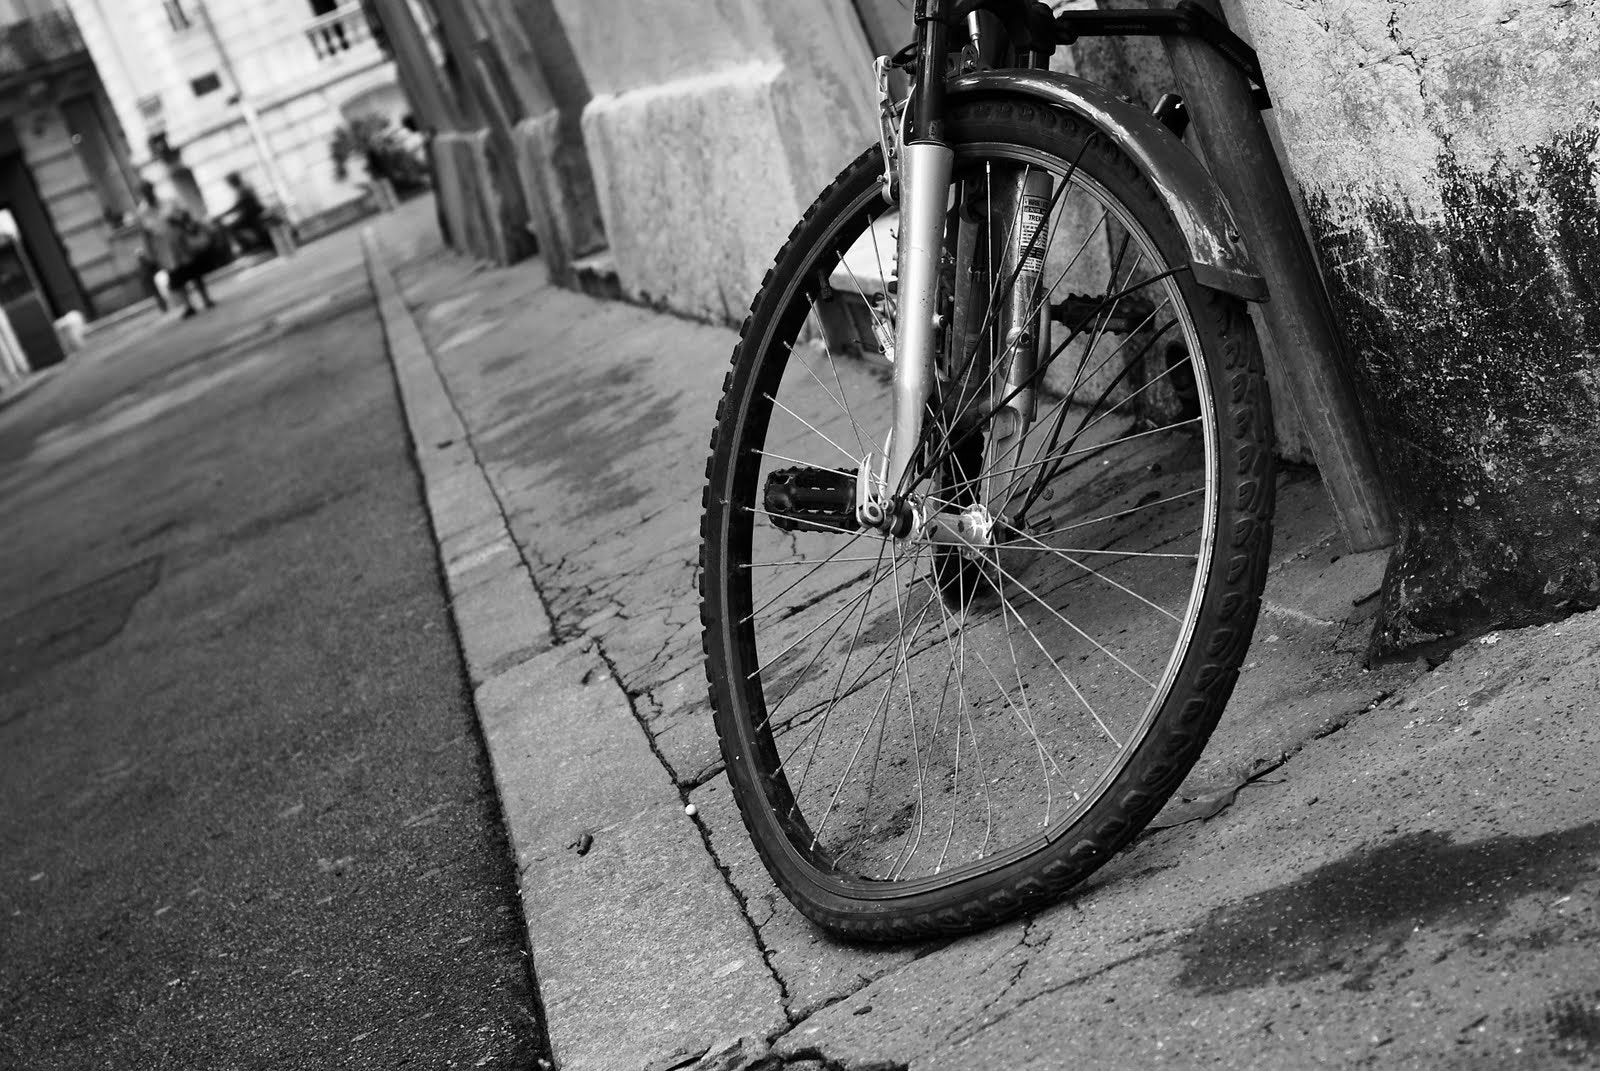 Photograph Poor bike by Brice Foto on 500px